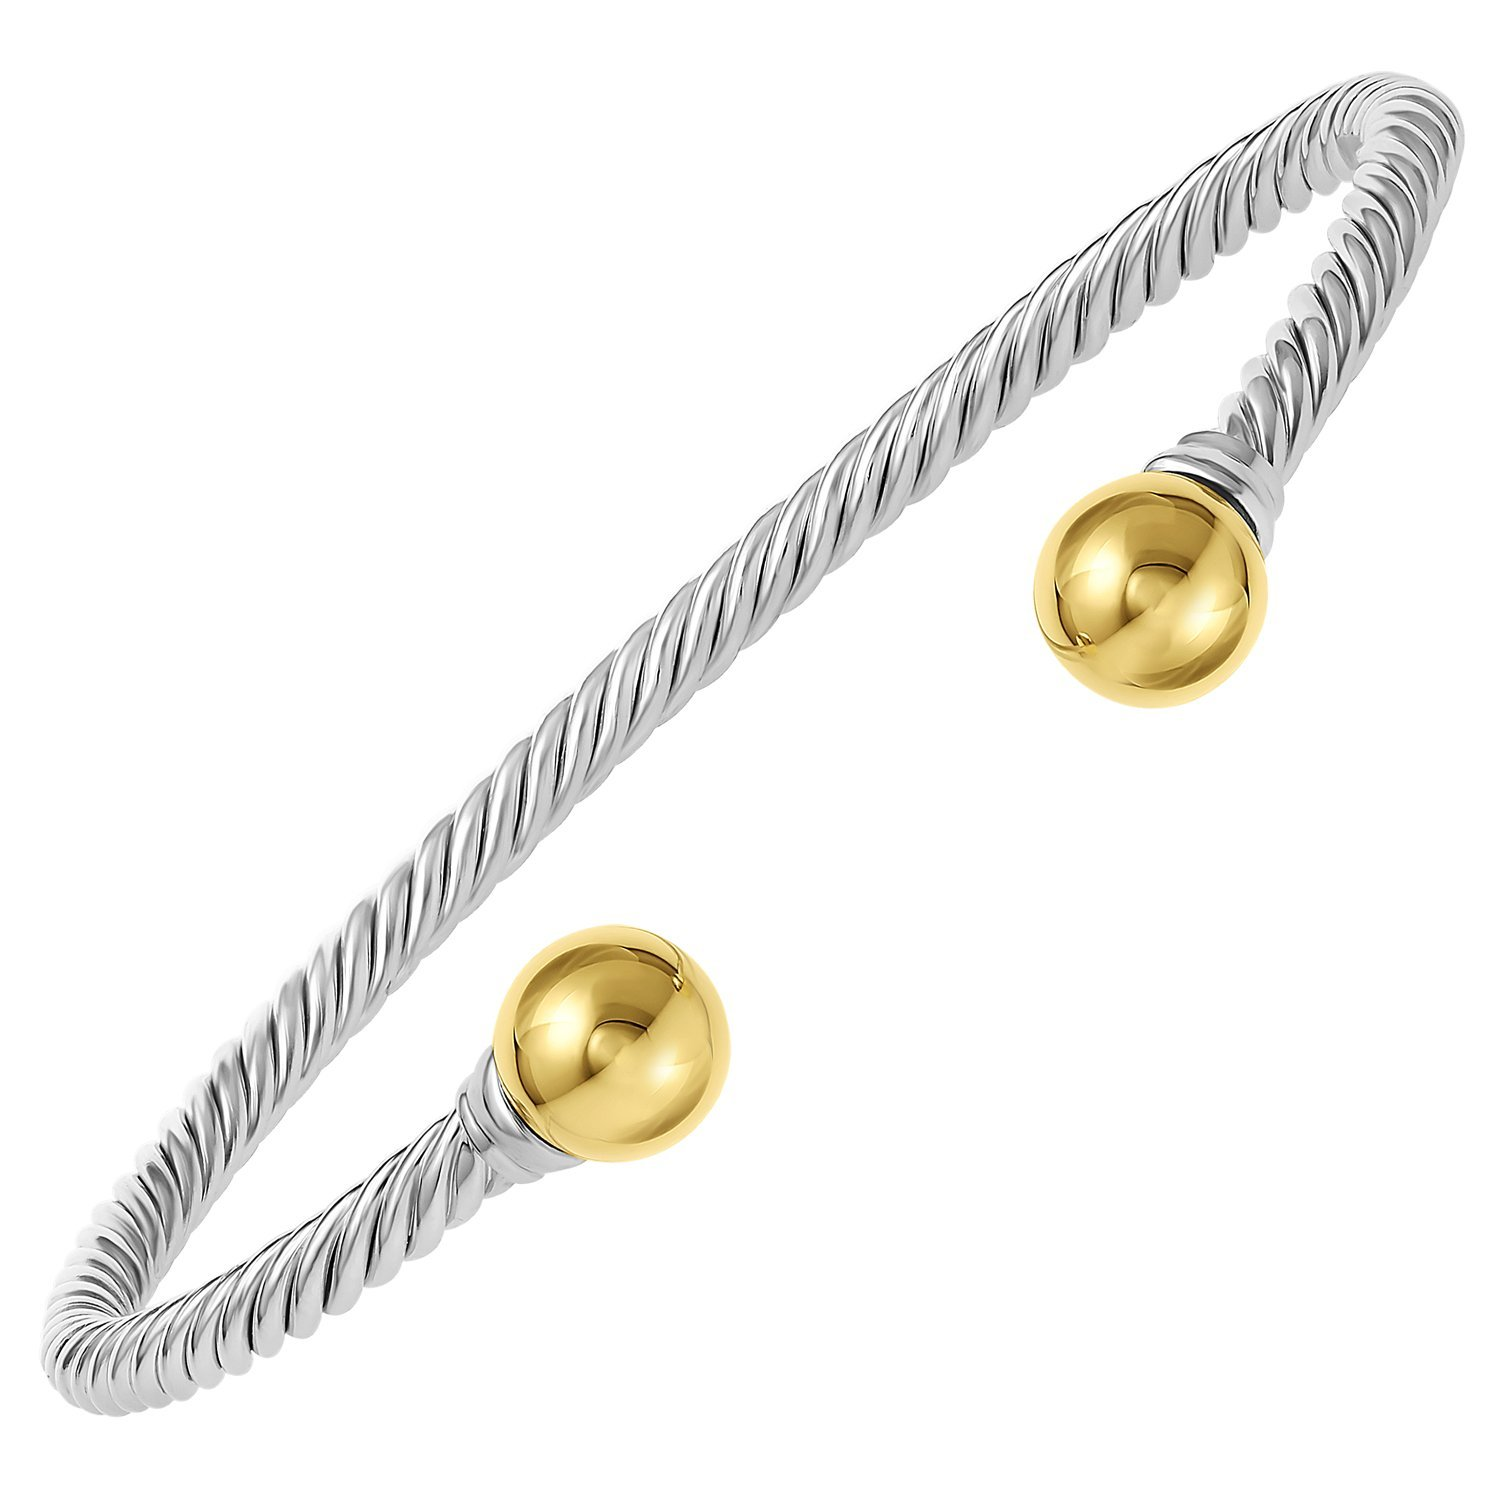 bangles product supply singapore bangle jewelry twist twisted gold braided trade stainless jin steel export copper miss plated bracelet huang cheap